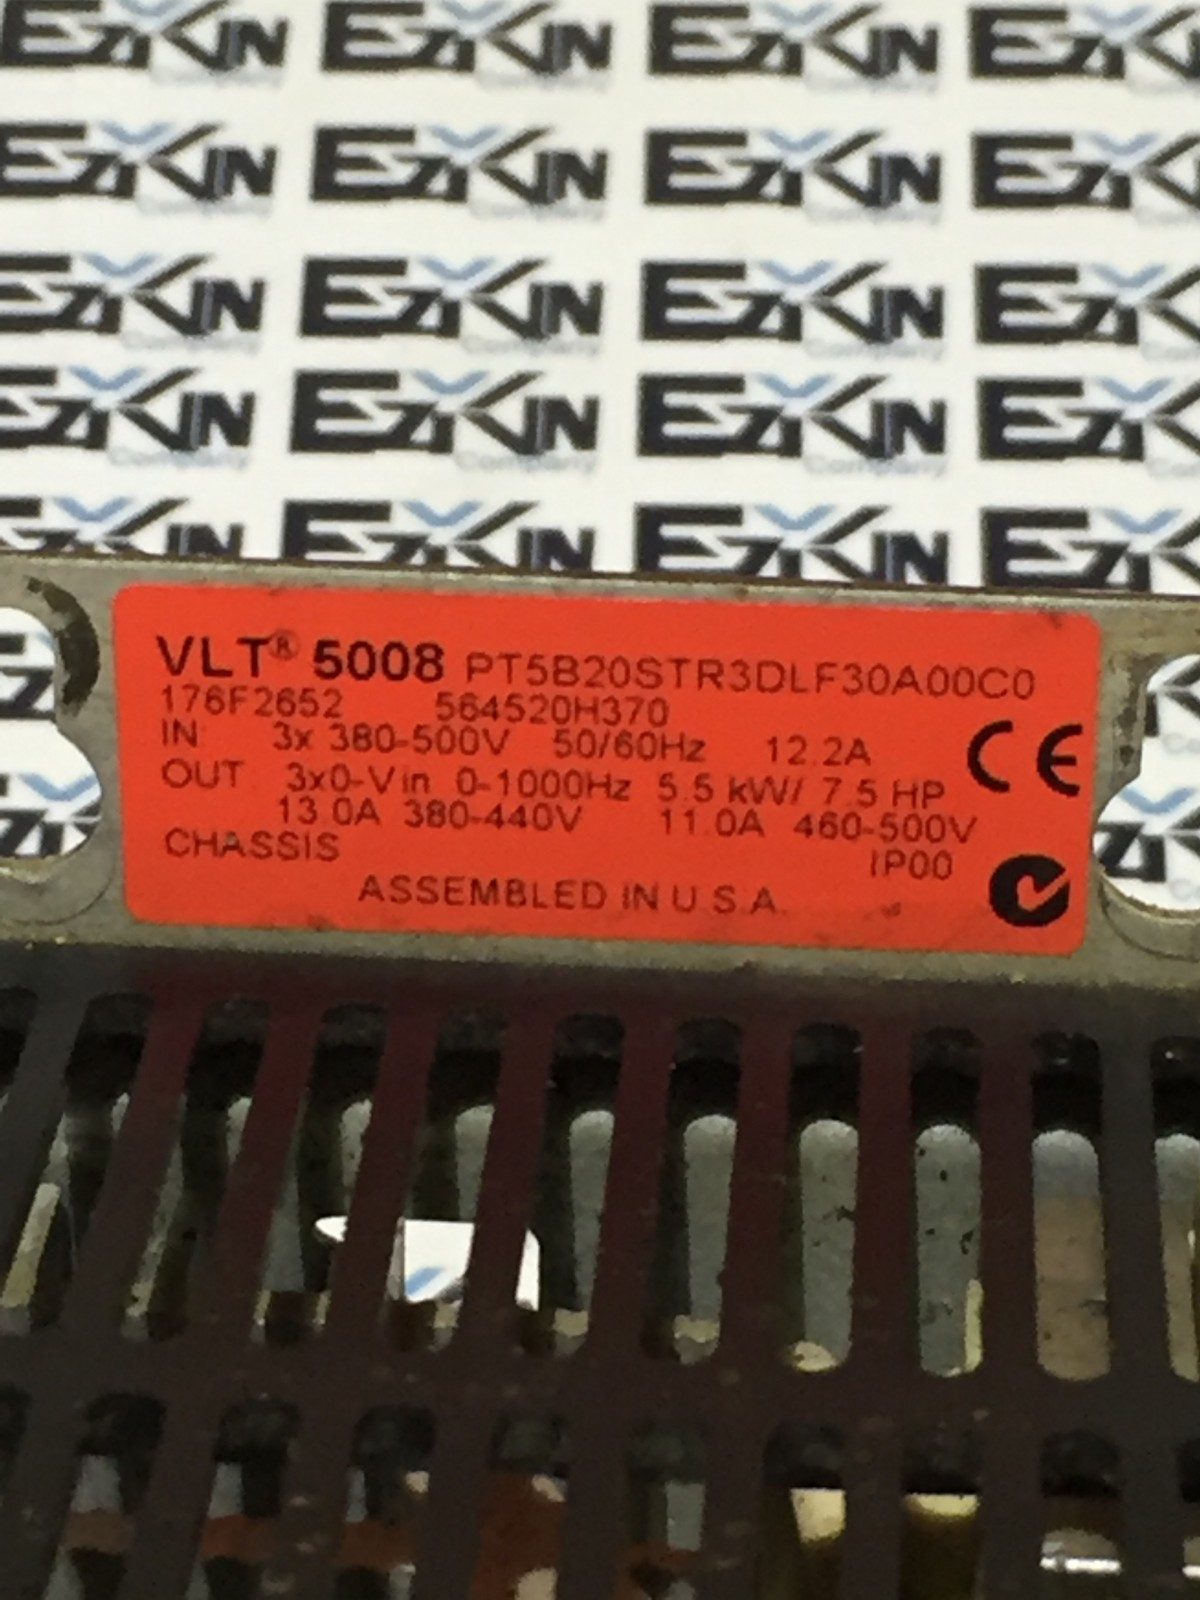 Danfoss VLT 5002 PT5B20STR3DLF30A00C0 5HP drive without display